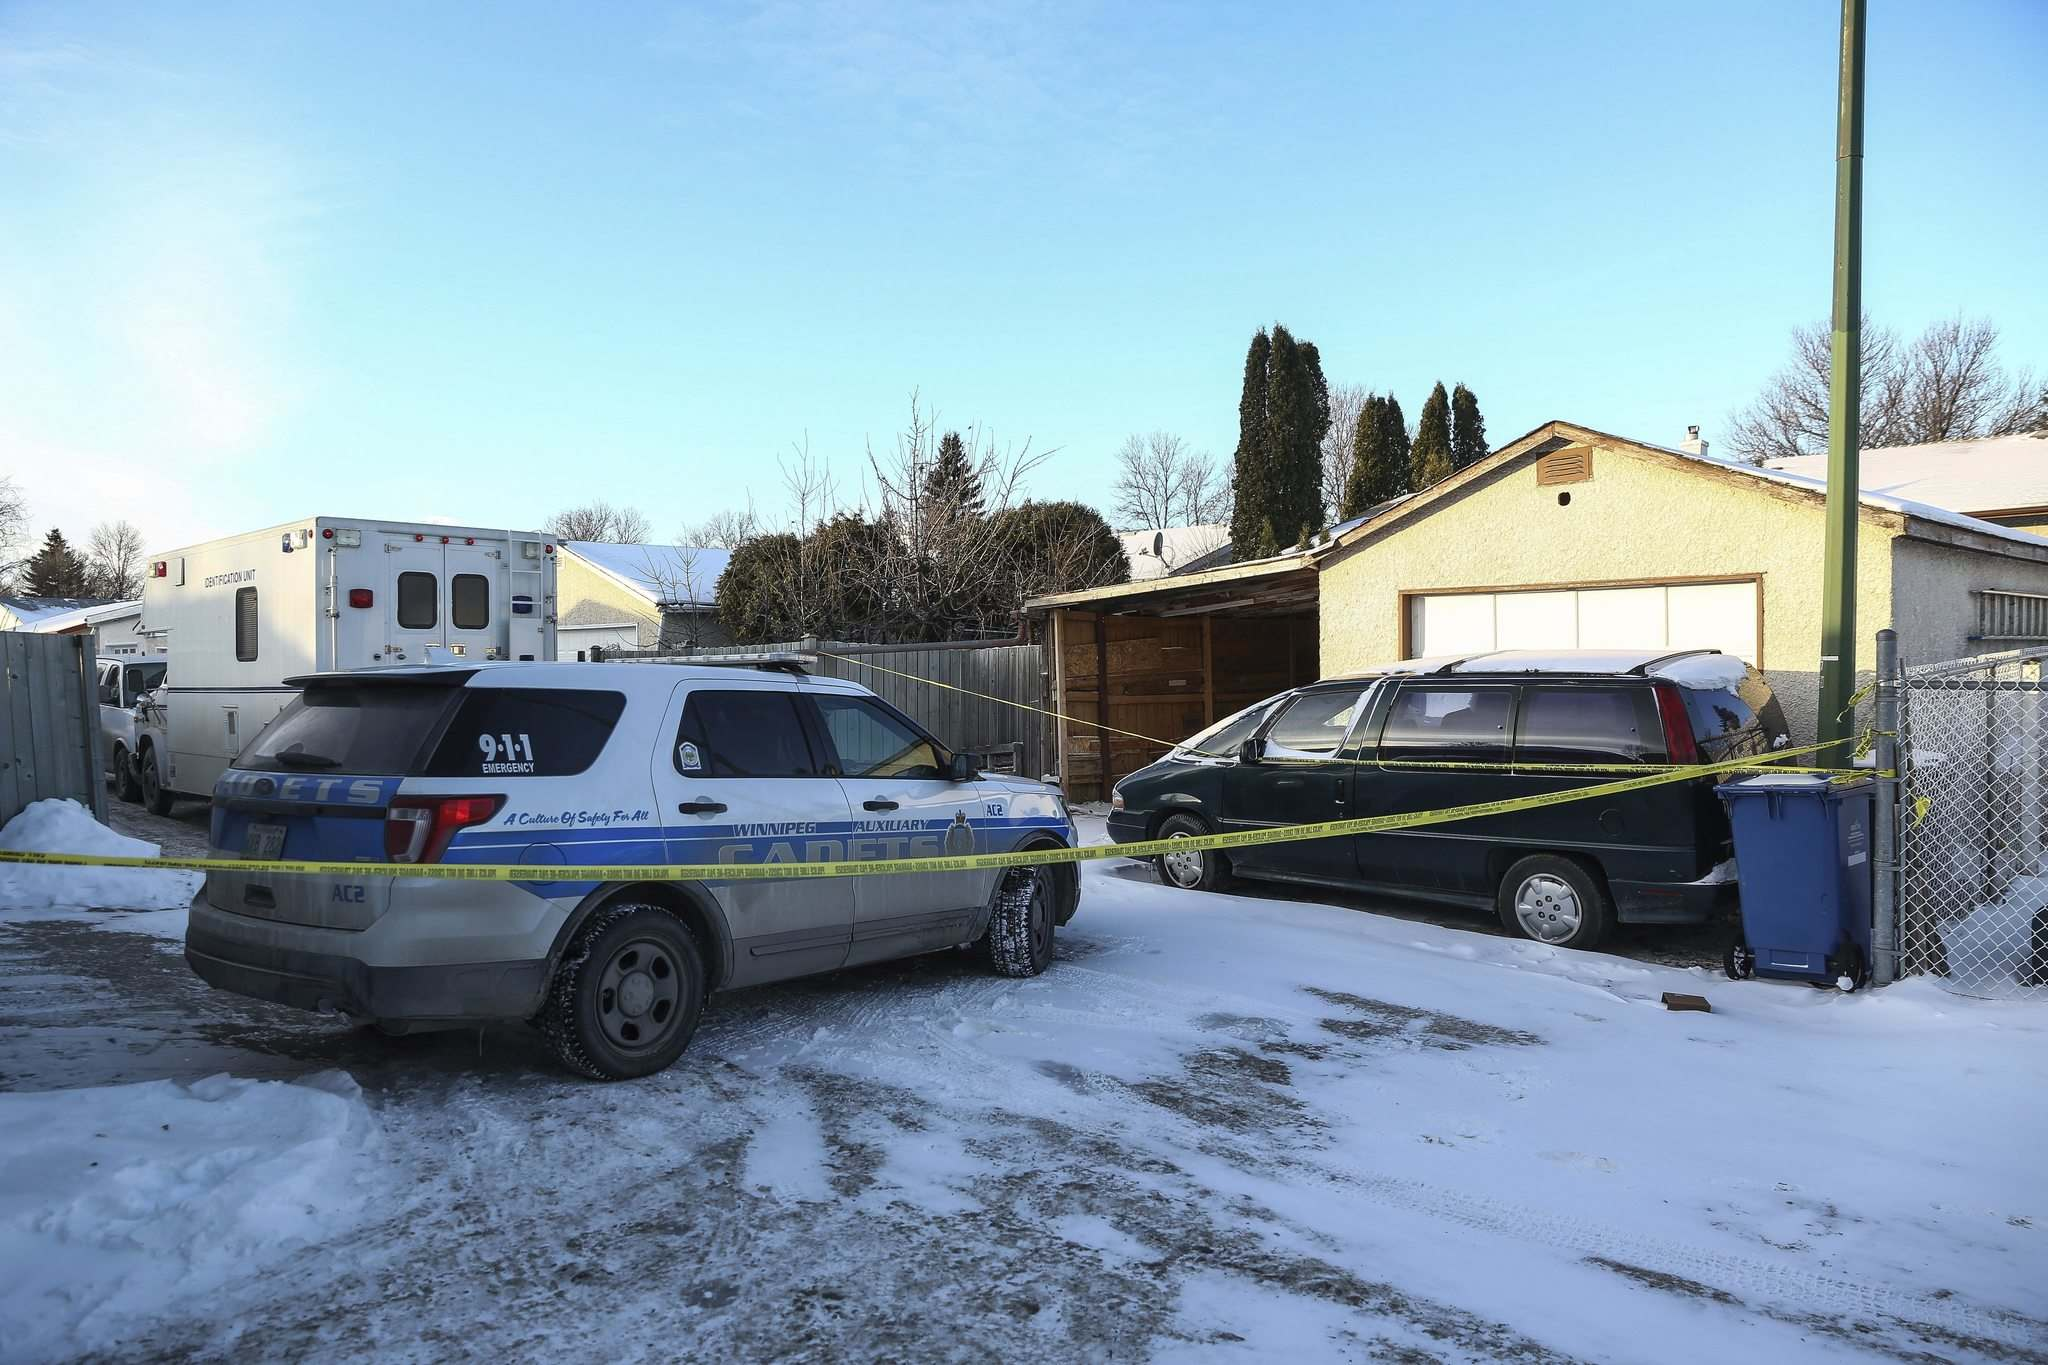 MIKE DEAL / WINNIPEG FREE PRESS</p><p>Winnipeg police have been at a residence in the 100 block of Manila Road since Tuesday.</p>